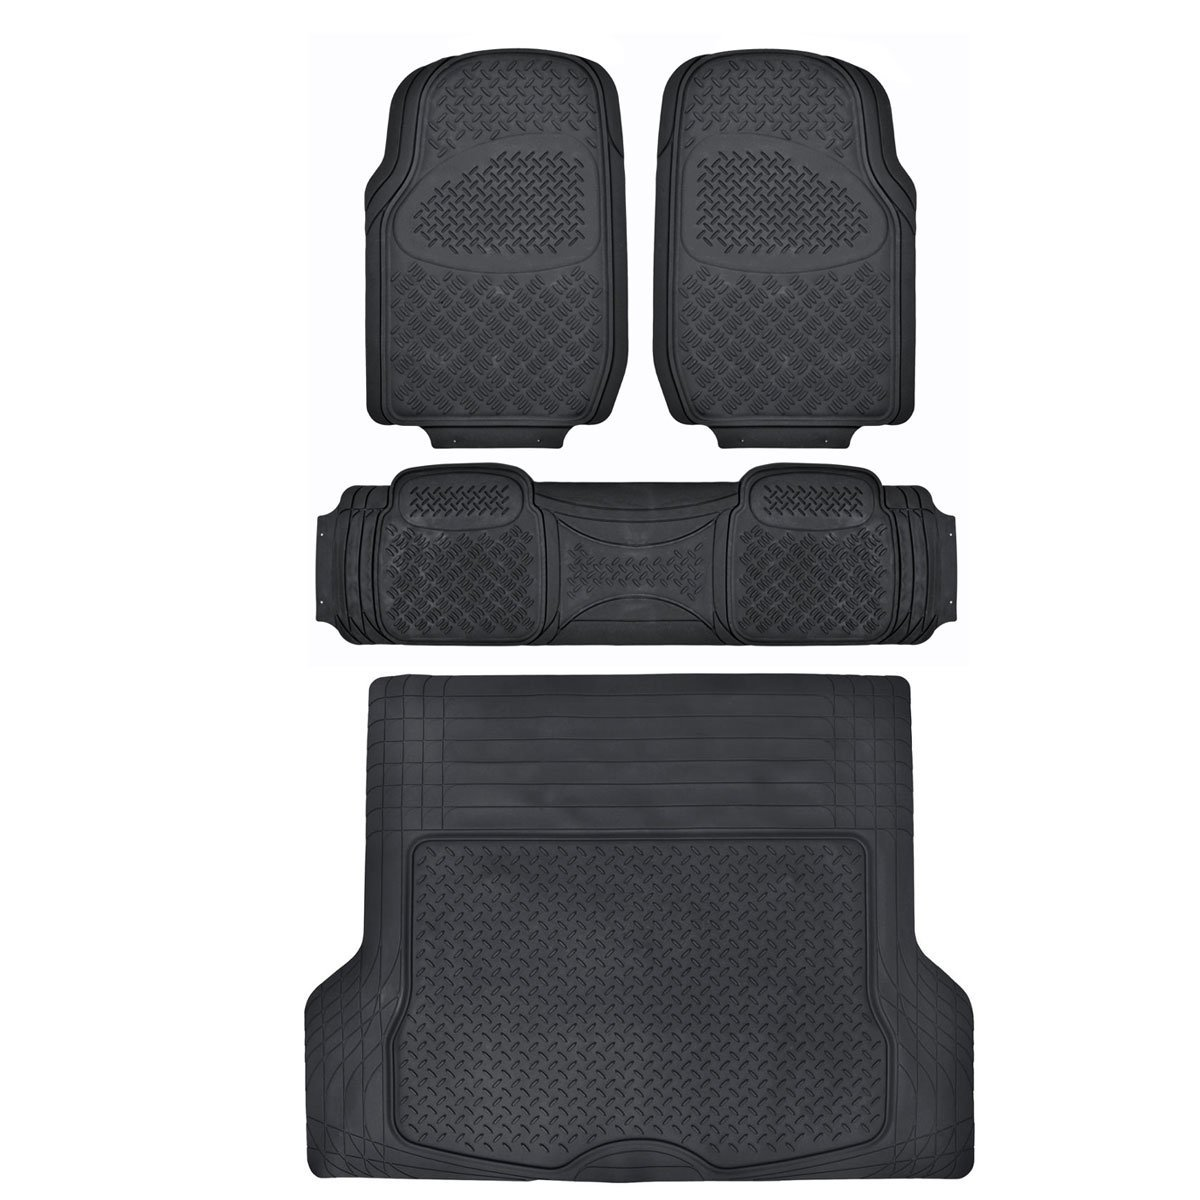 Motor Trend Odorless Heavy Duty Car SUV 4 Piece Floor Mats - All Weather - 2 Row and Trim to Fit Trunk XL Cargo Liner (Black)